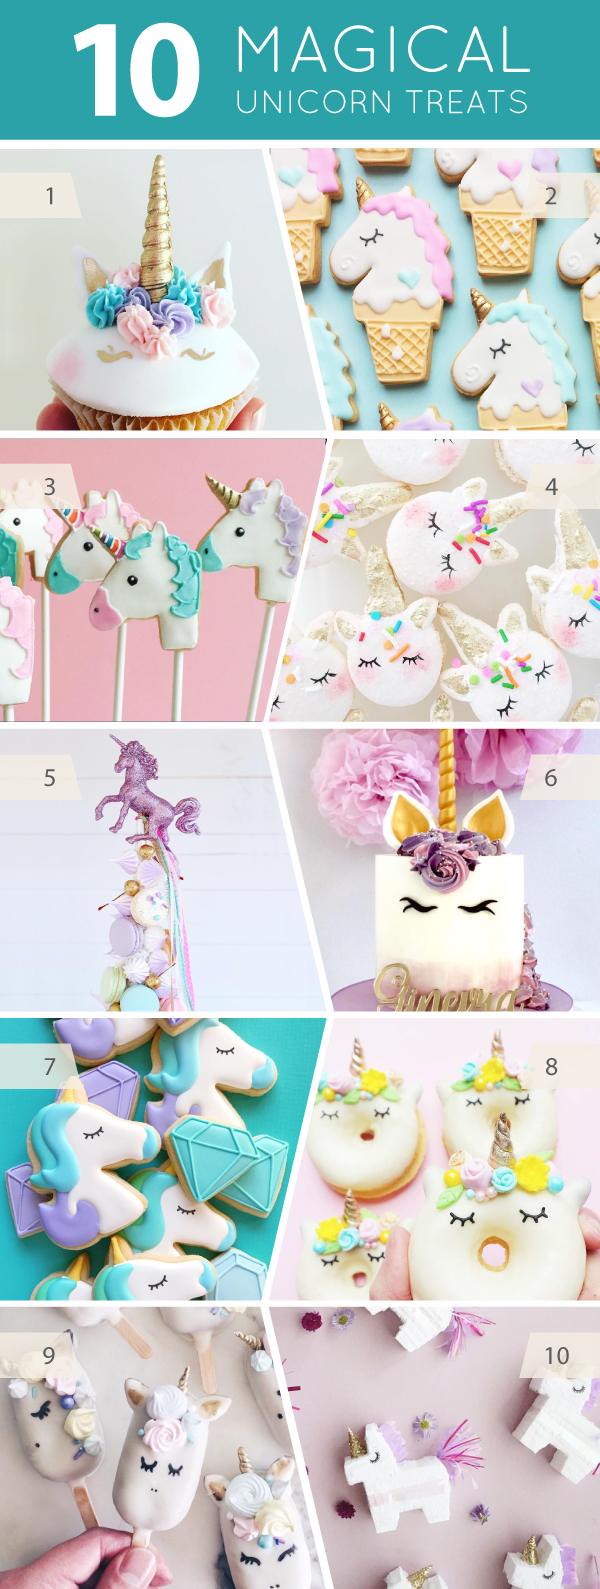 10 Magical Unicorn Treats - cakes, cupcakes, cookies and cake pops for unicorn lovers | on TheCakeBlog.com